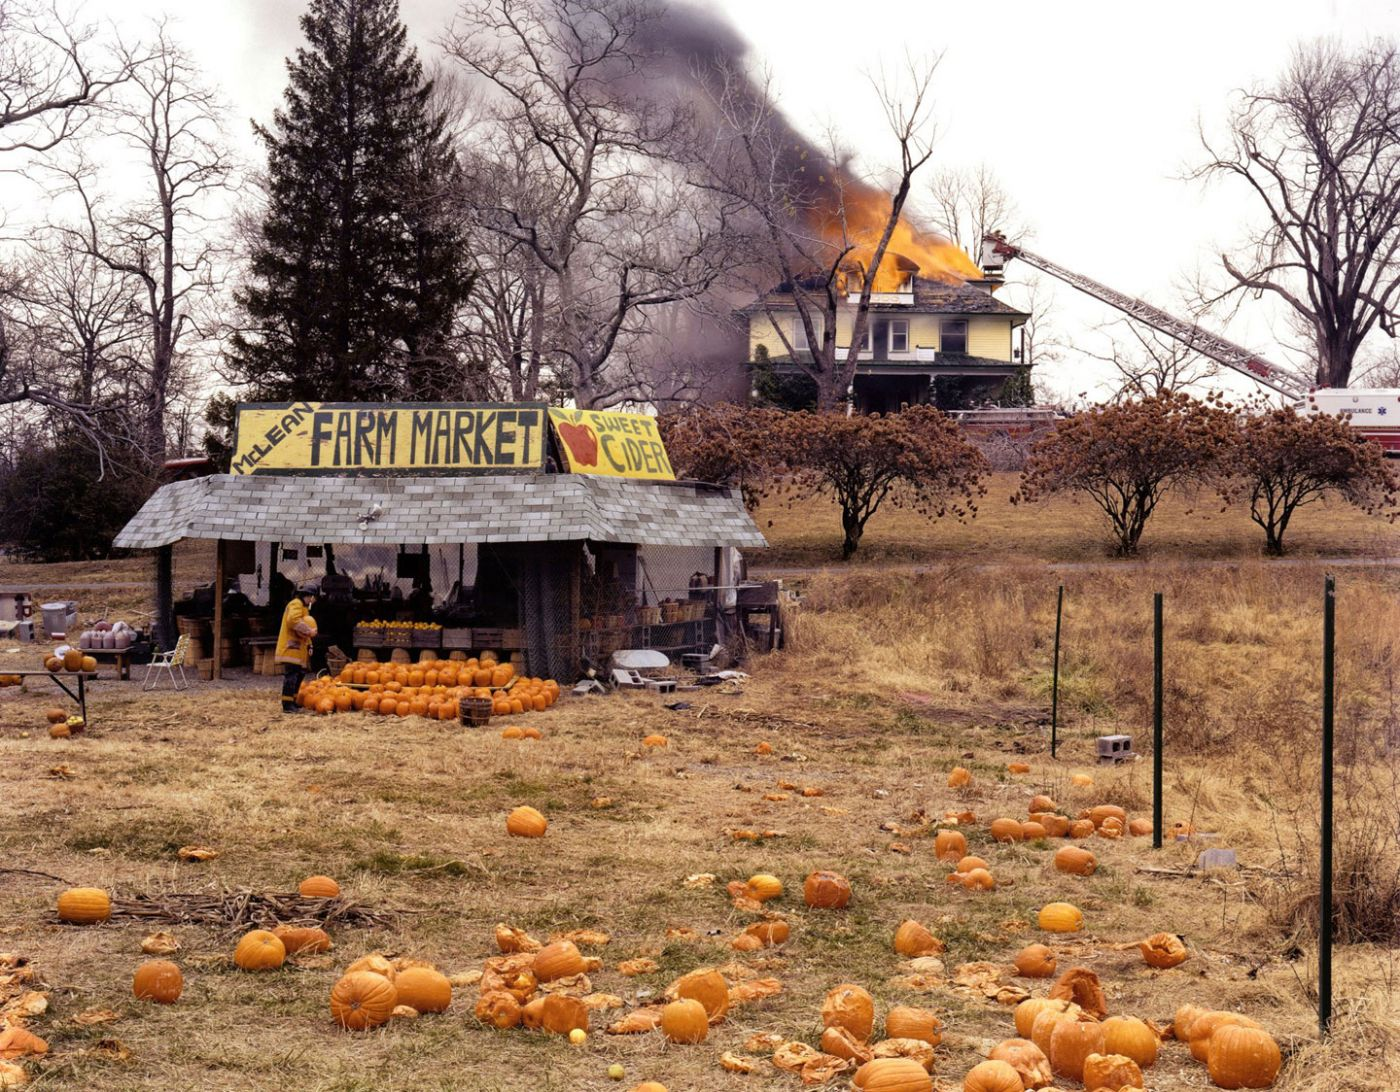 Joel Sternfeld: American Prospects (First Steidl Edition) [SIGNED]